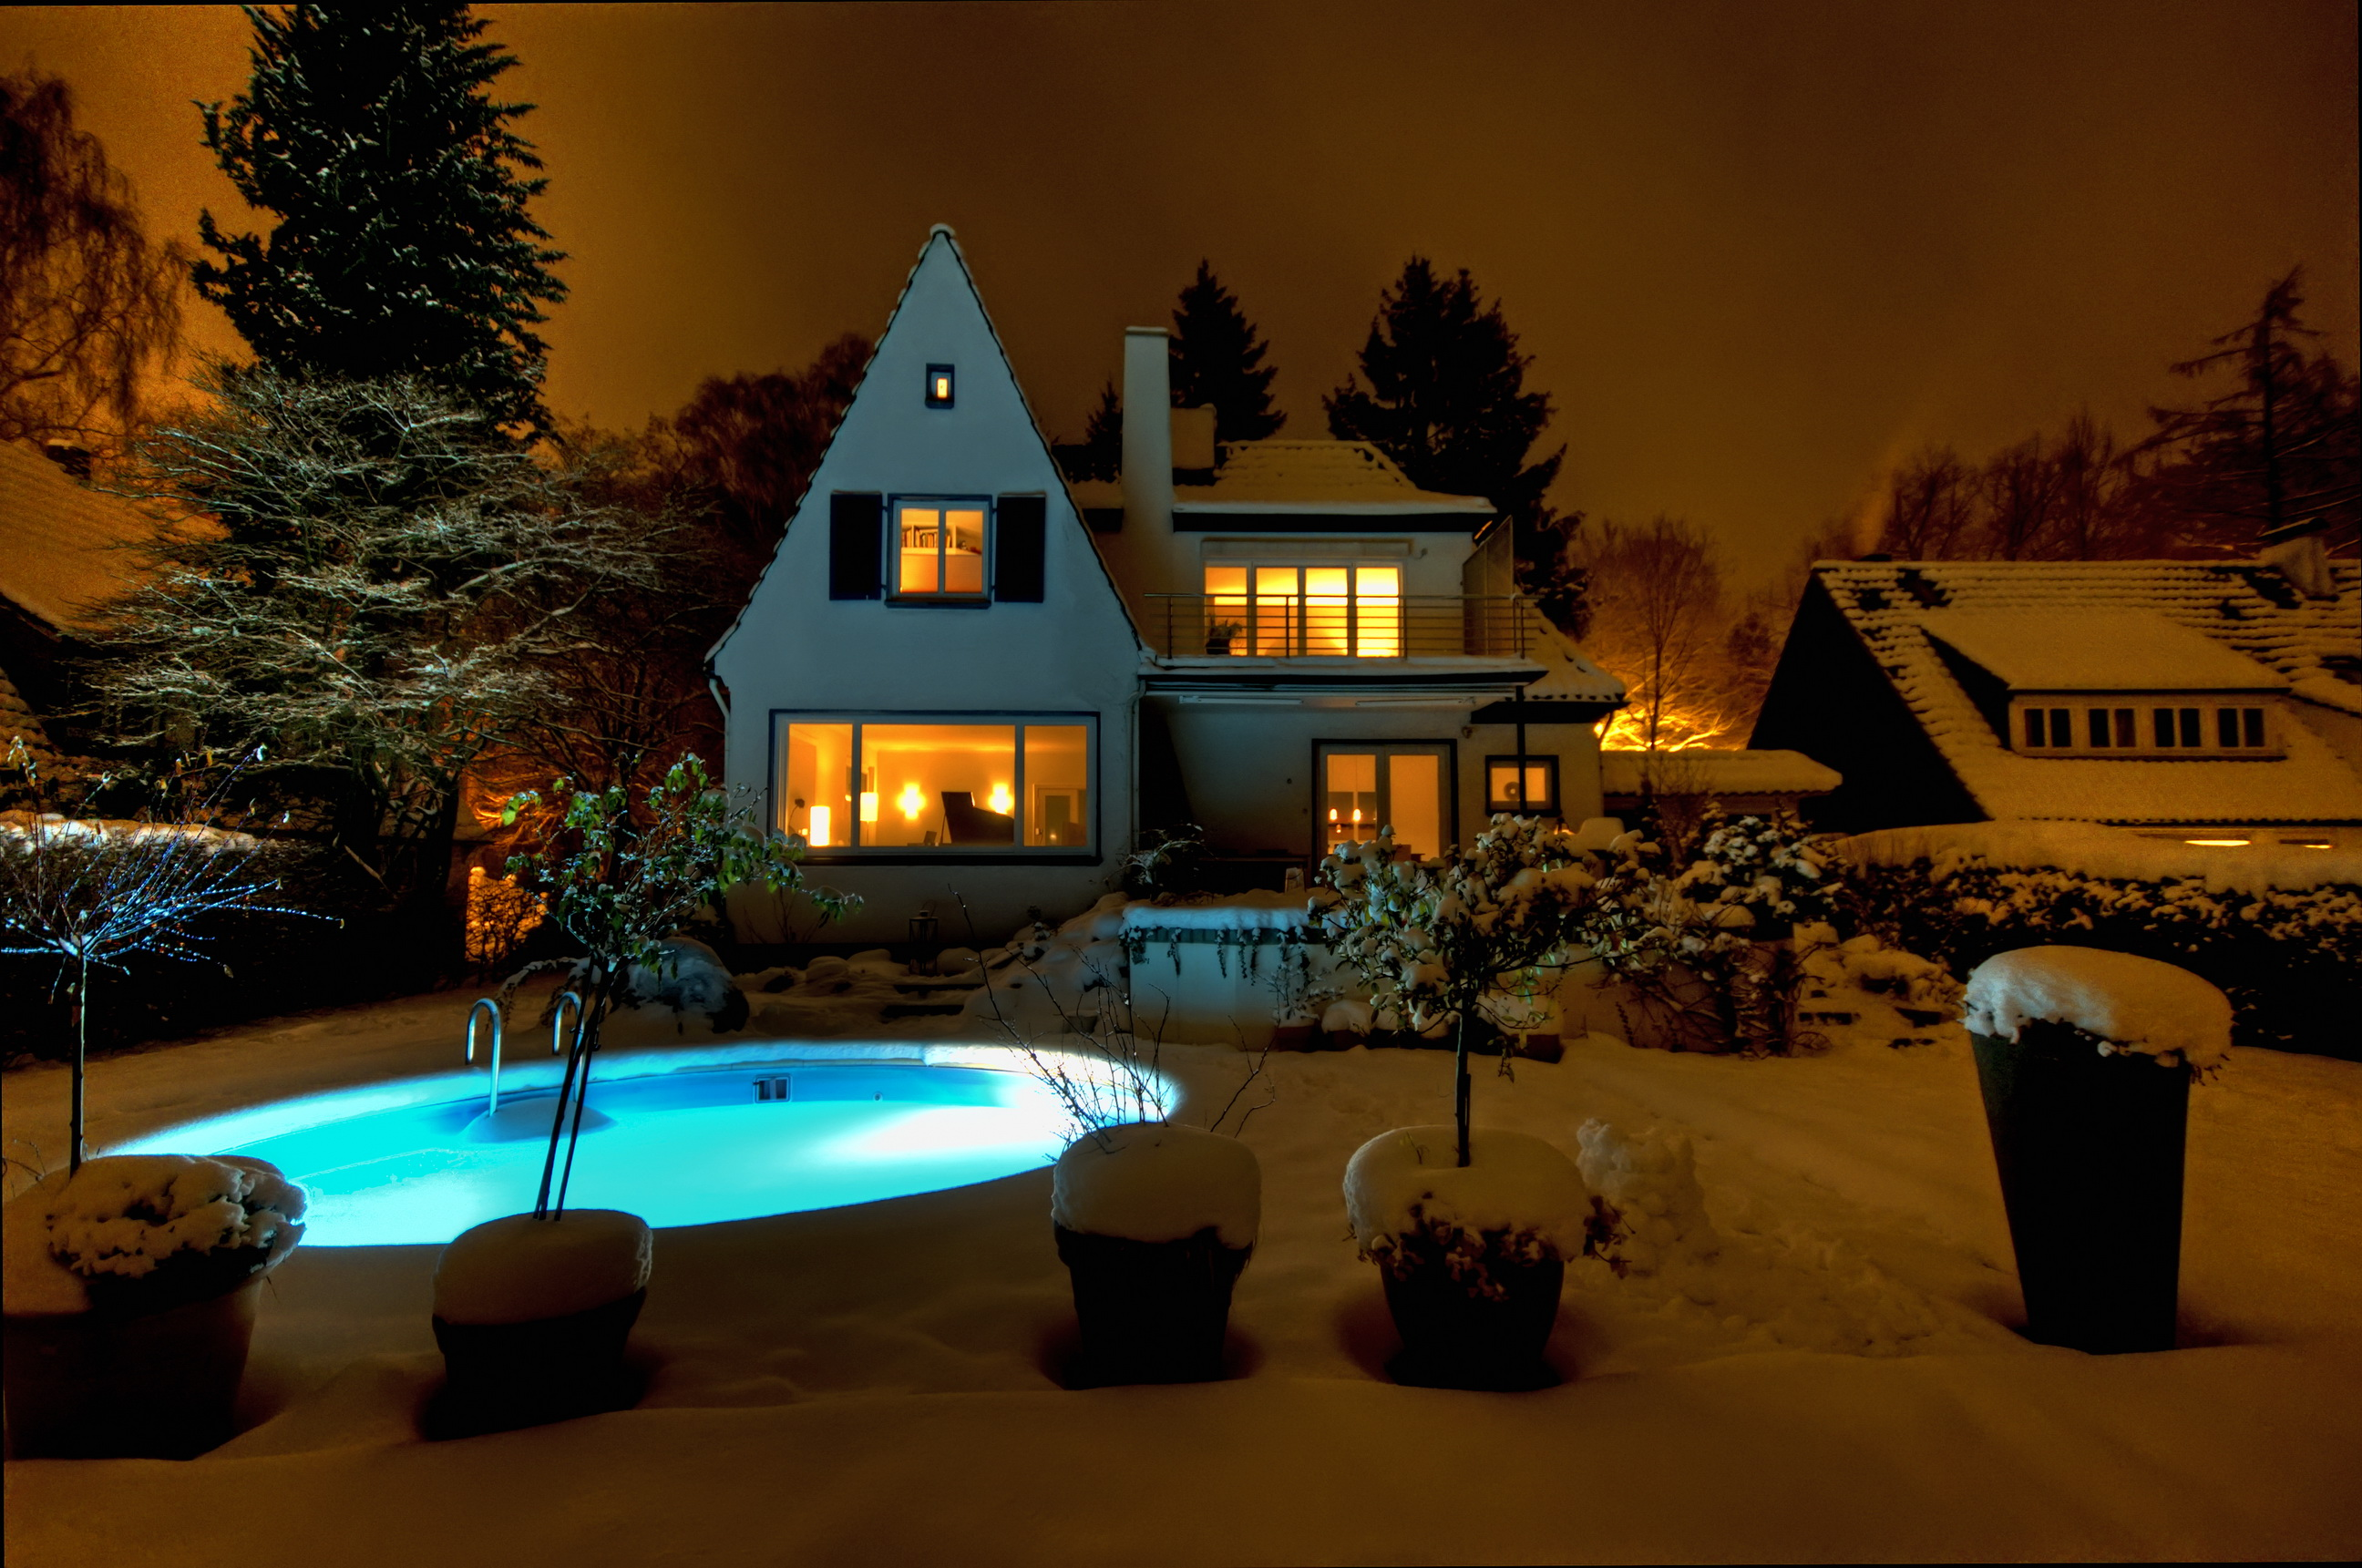 Mansion with pool at night  Photo Swimming bath Snow Mansion night time Cities 2592x1721